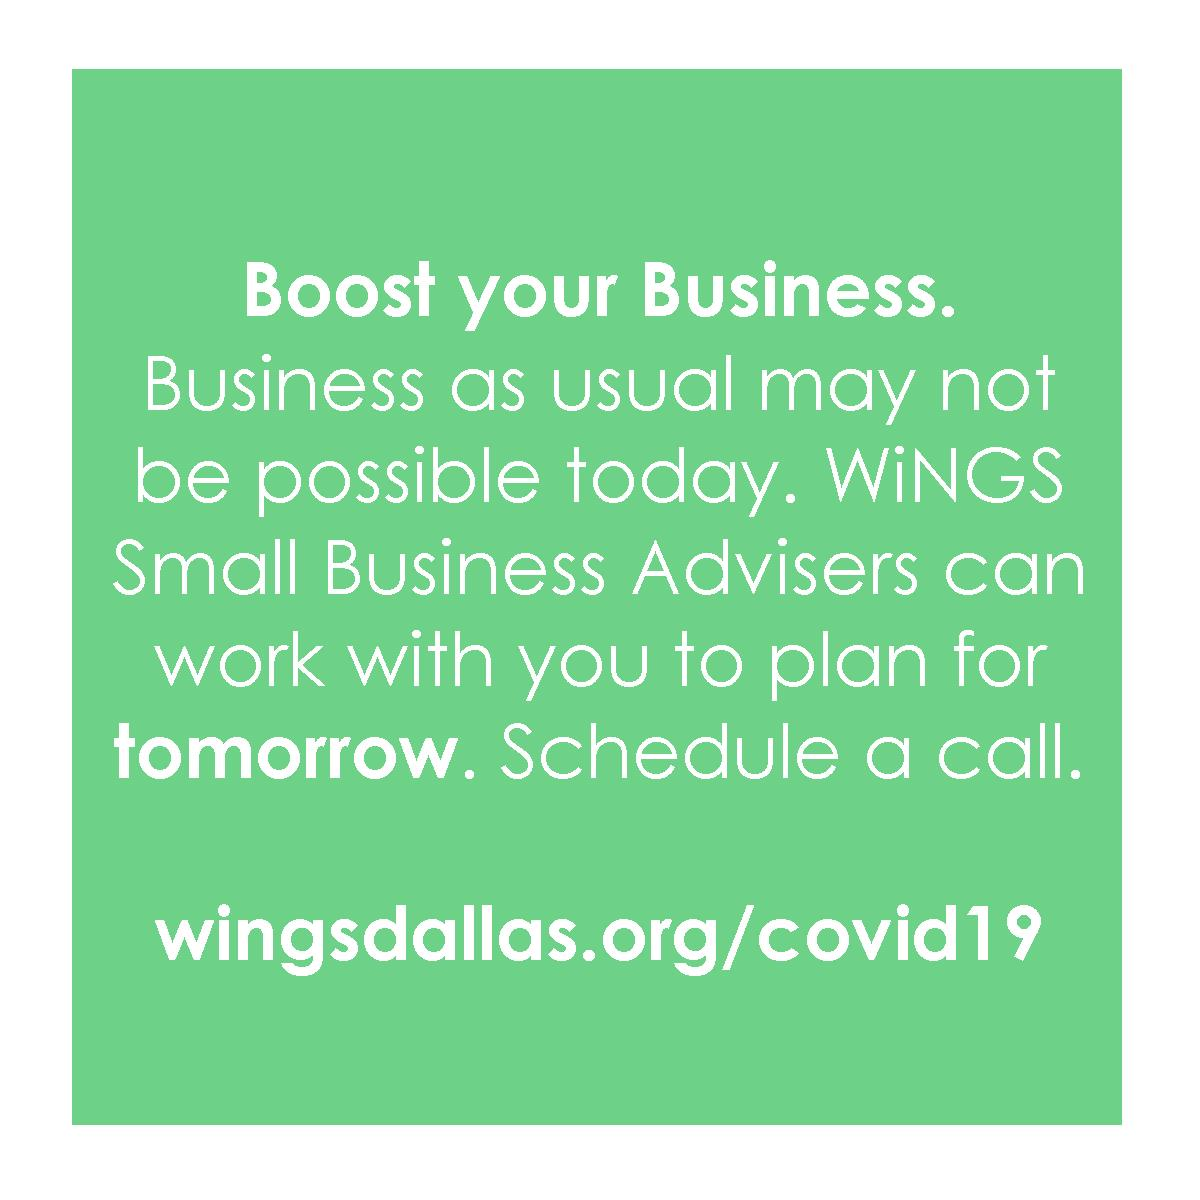 test Twitter Media - WiNGS Small Business Advisers are available for one-on-one business advising over the phone at no cost to all women-owned businesses in the DFW area with less than 5 employees. For more info and to schedule your call, visit https://t.co/x3wJeniB9i. #womenowned #poweredbywings https://t.co/Do63vitFpN